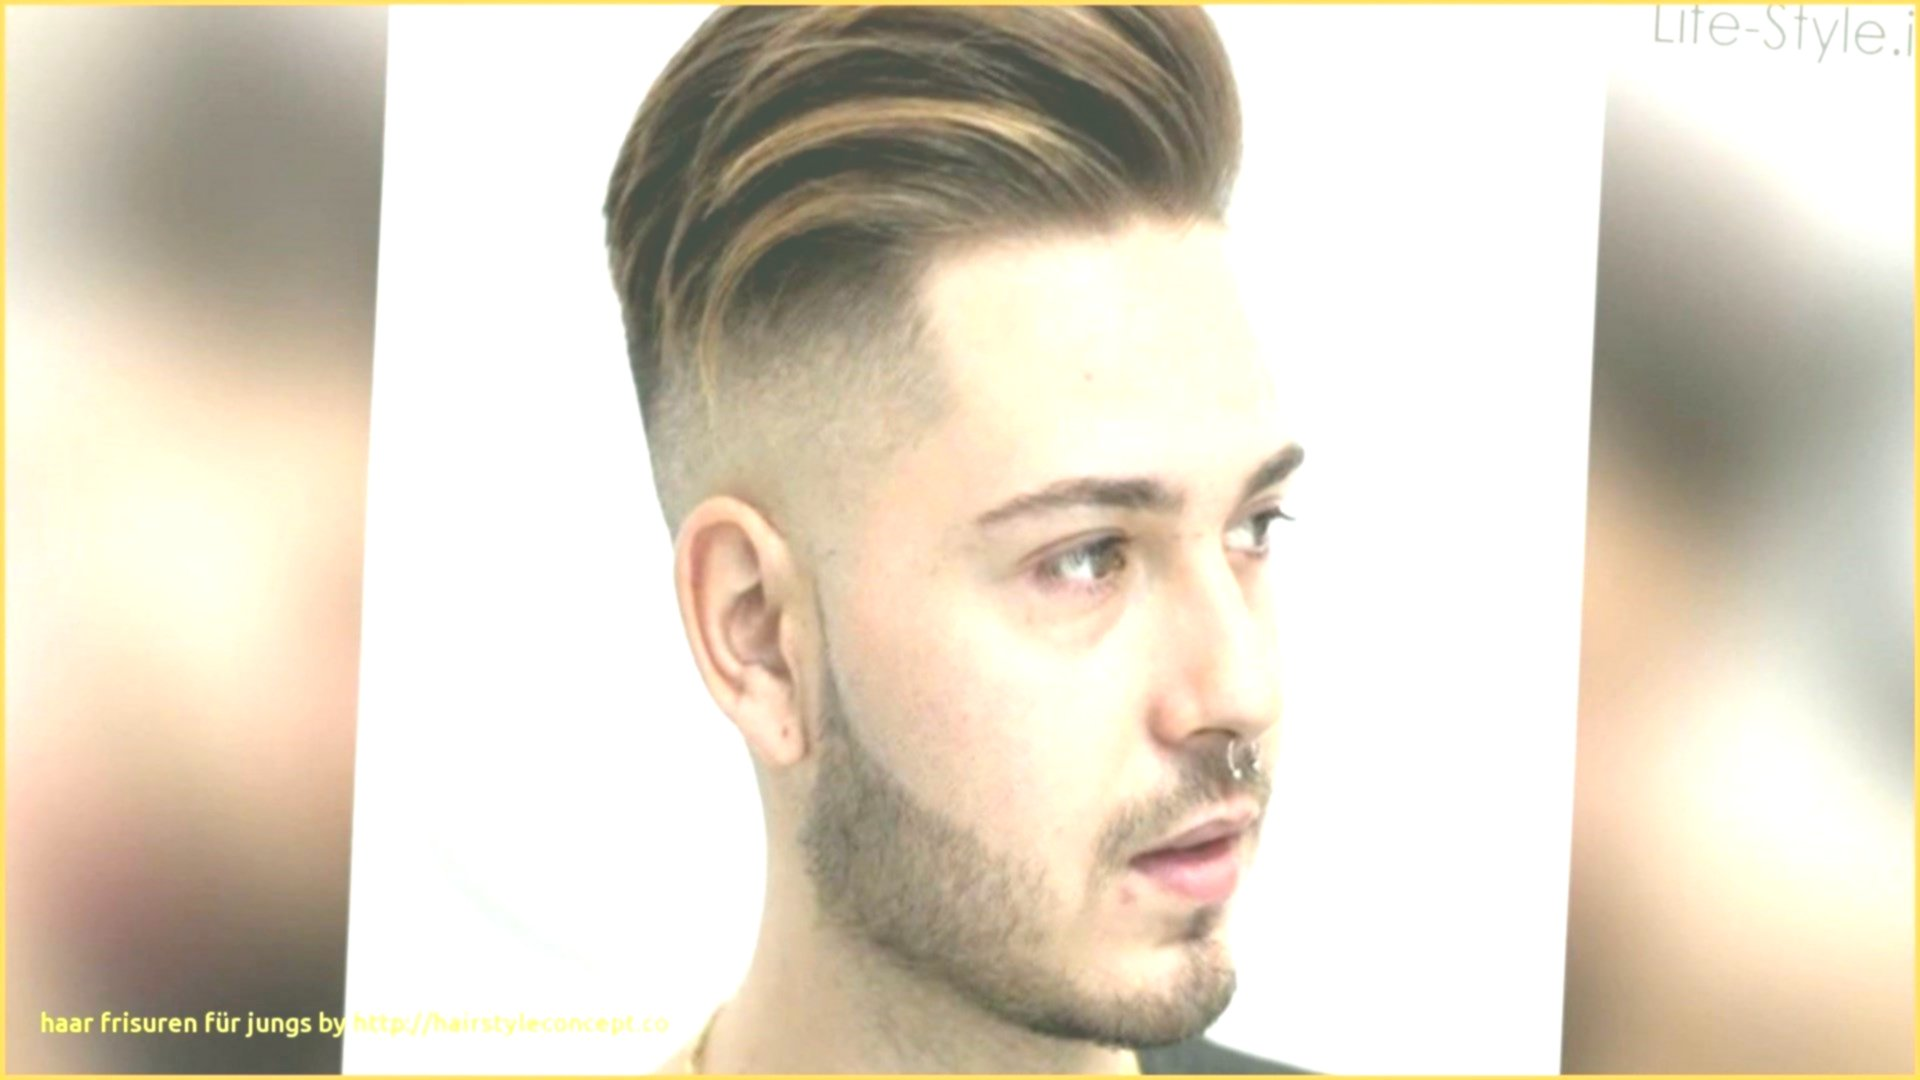 luxury hairstyles guys collection-Inspirational hairstyles guys photography